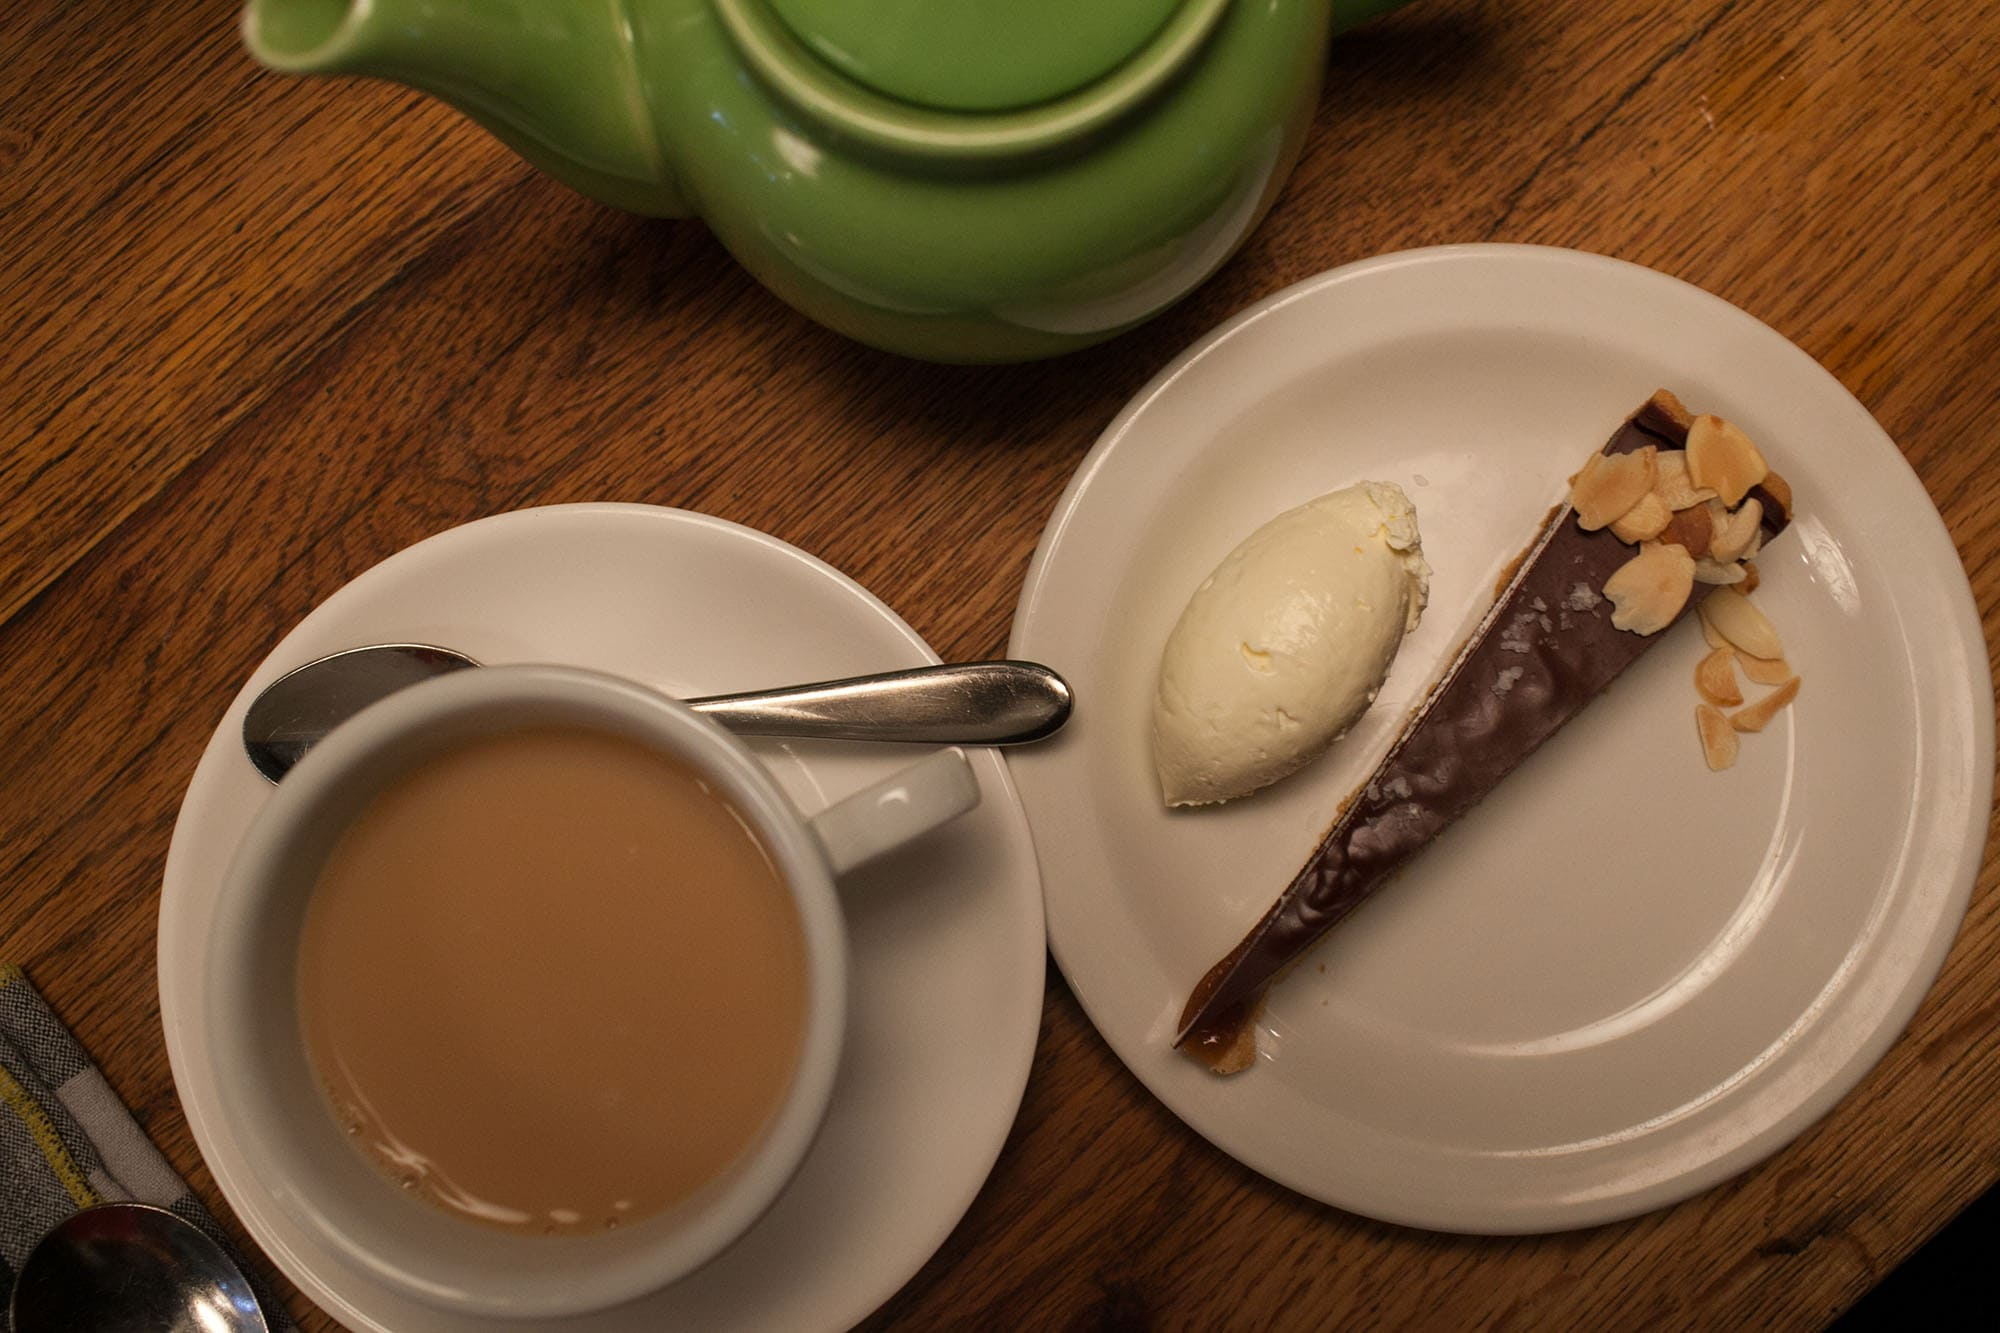 Salted Caramel Chocolate Tart at Pizza East on the Eating London food tour in London, England